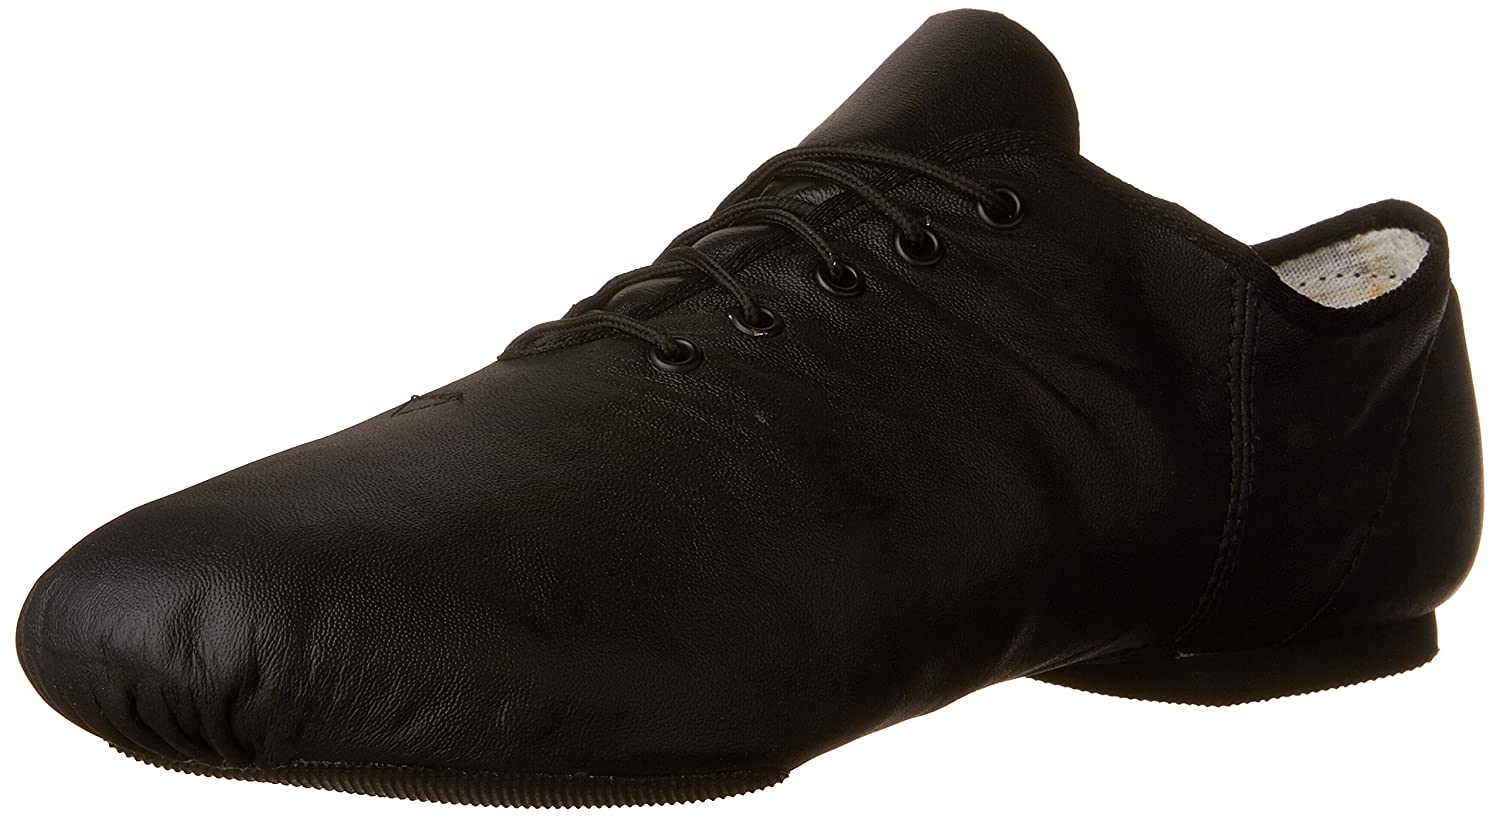 Capezio Women's EJ1 E-Series Jazz Shoe B0016P0LVQ 11.5 B(M) US|Black